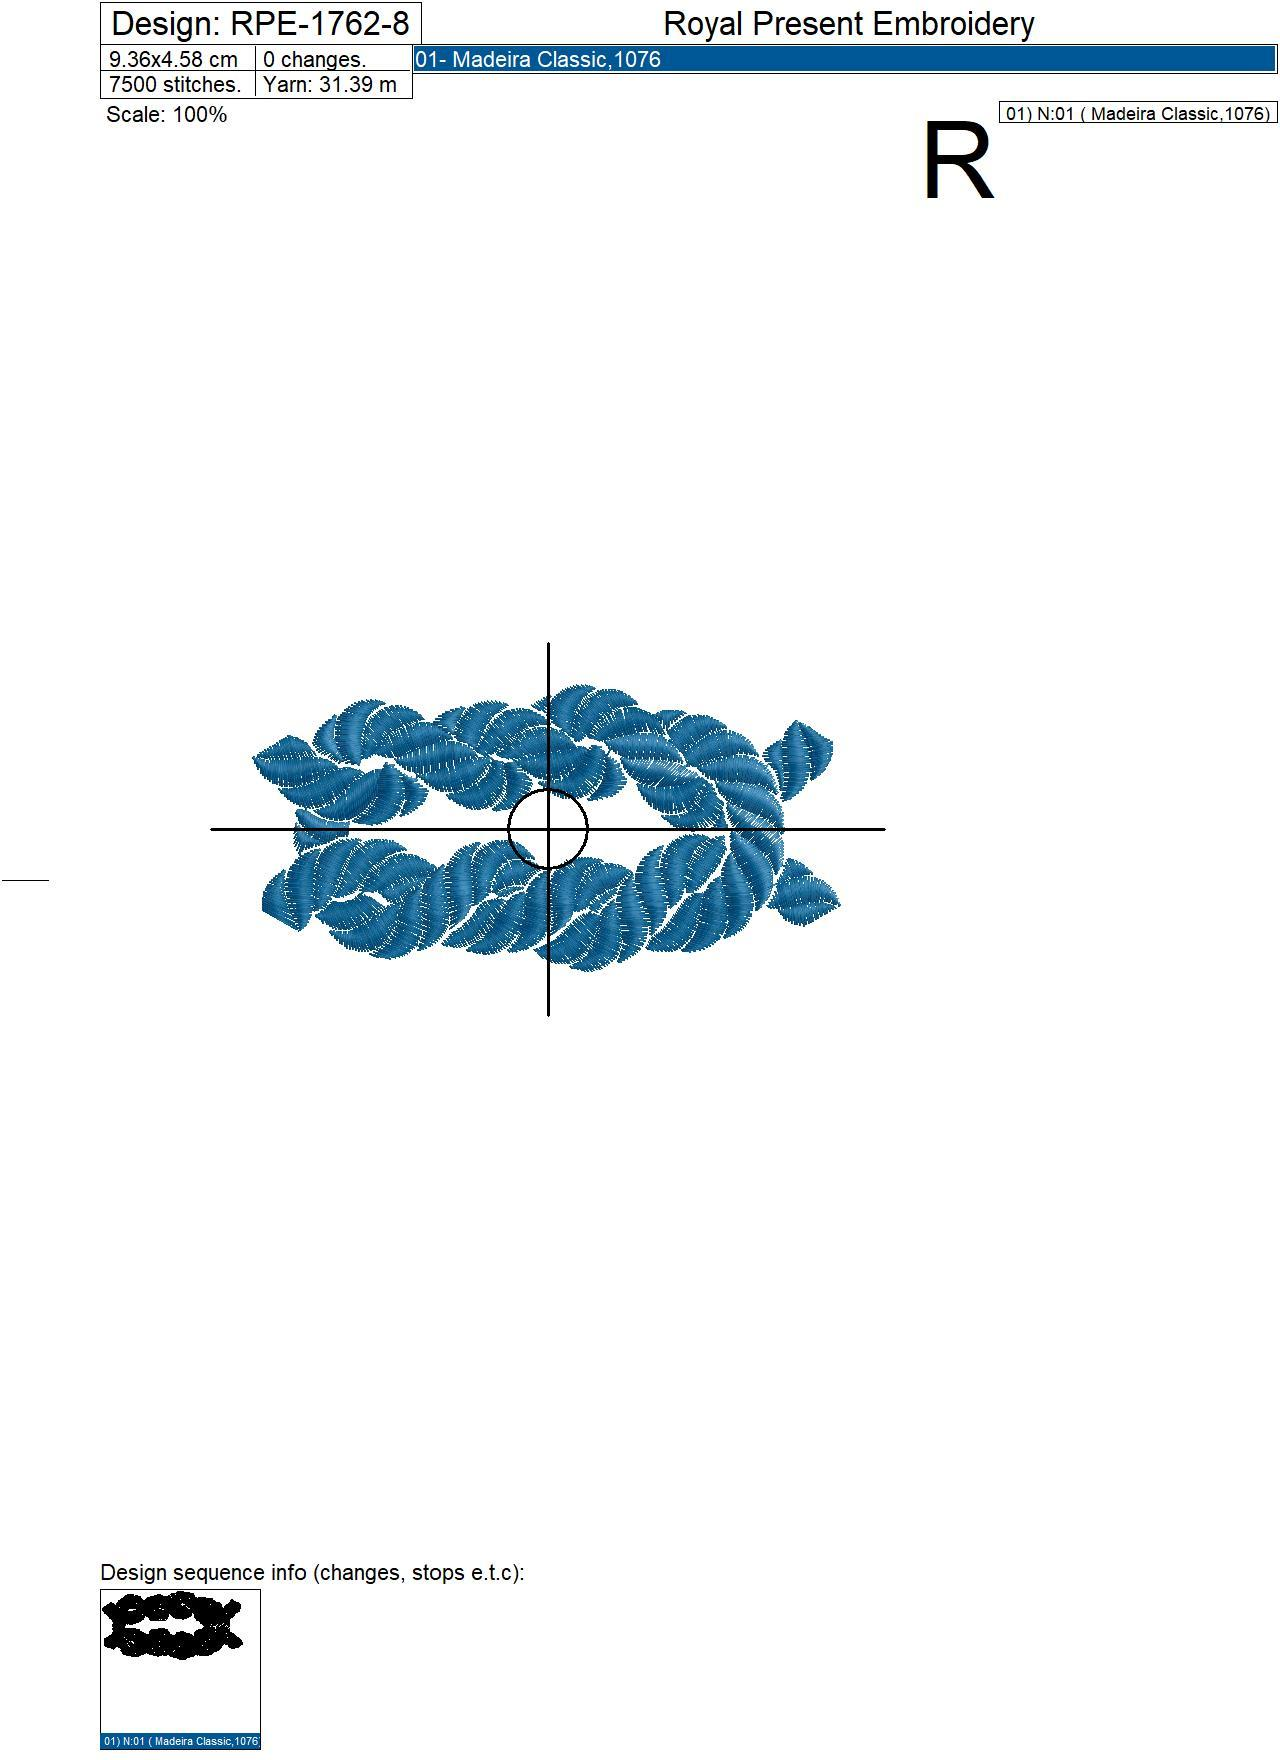 Nautical Rope Knots Machine Embroidery Designs